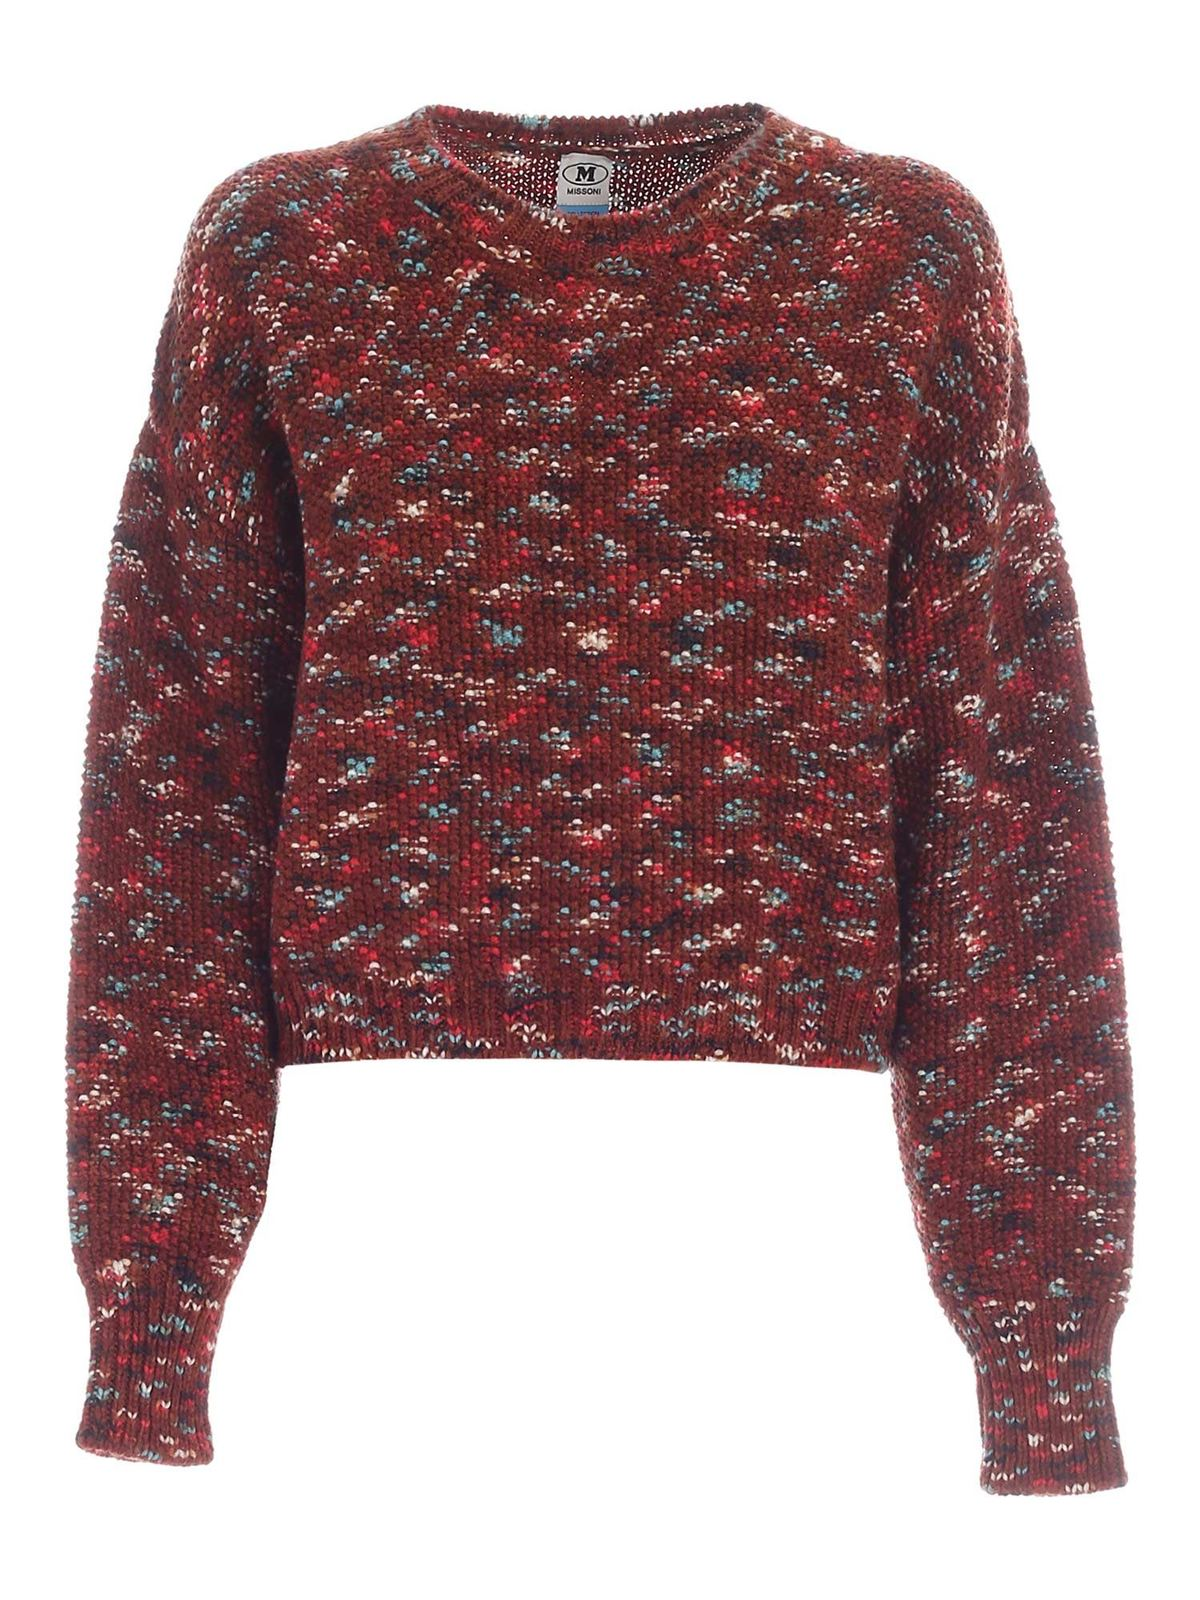 Missoni CREWNECK SWEATER IN COPPER COLOR